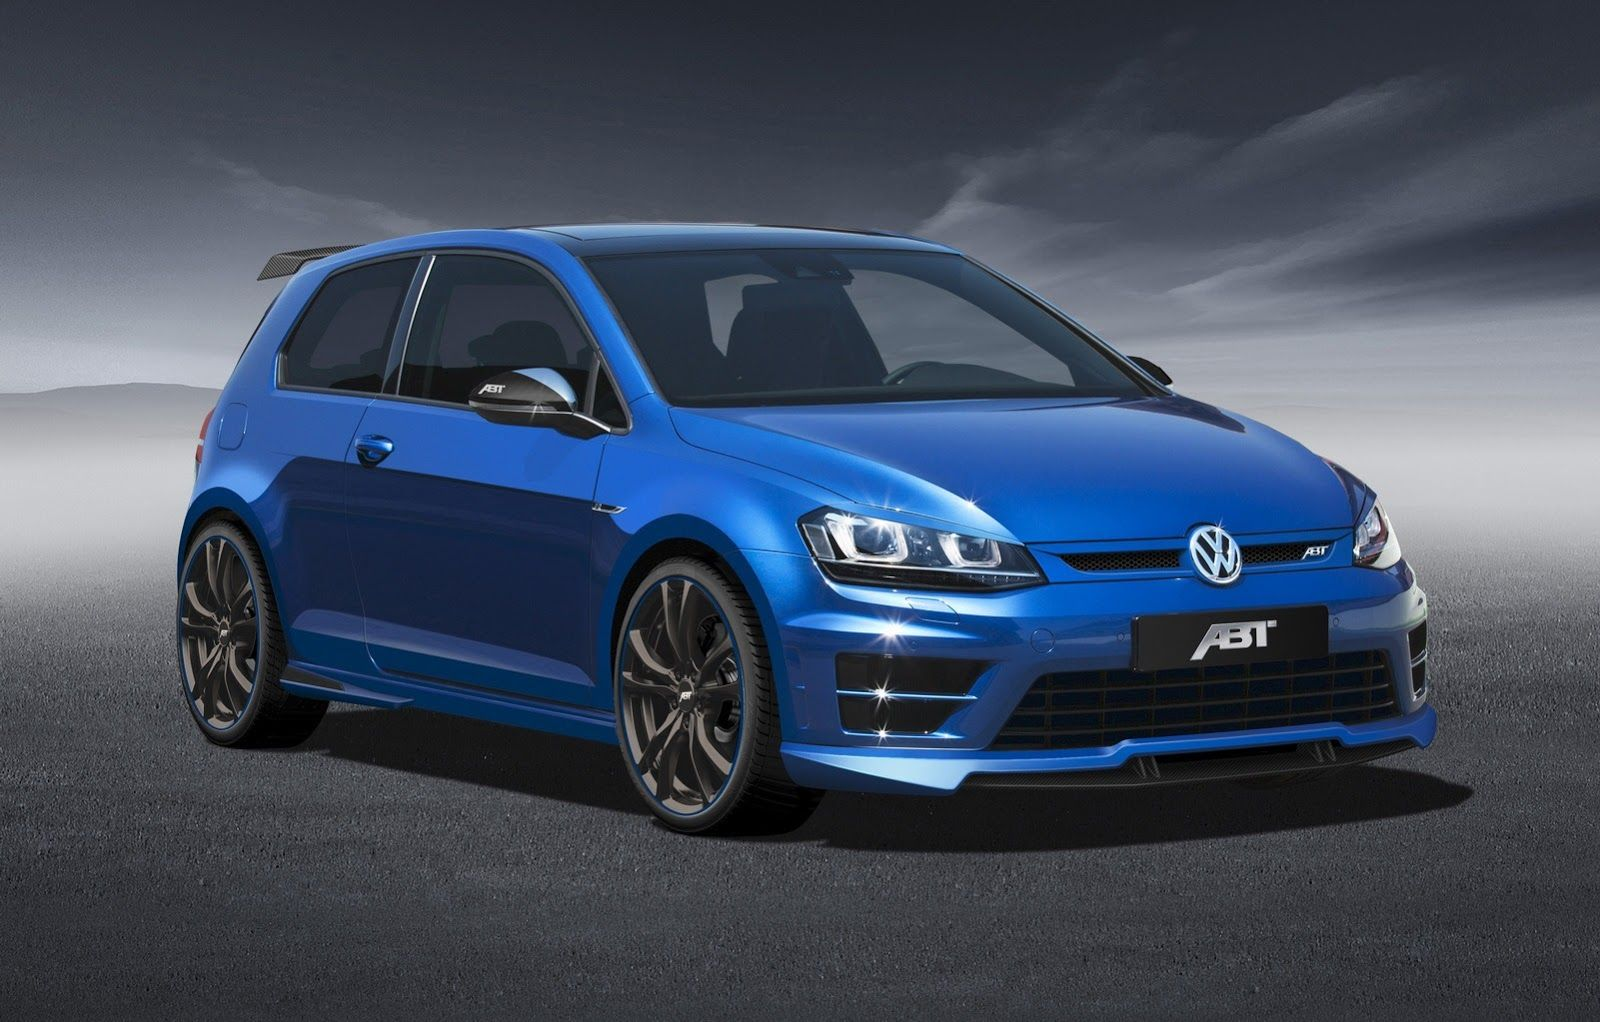 Abt Elevates New Vw Golf R To The Big League With 370ps Tune